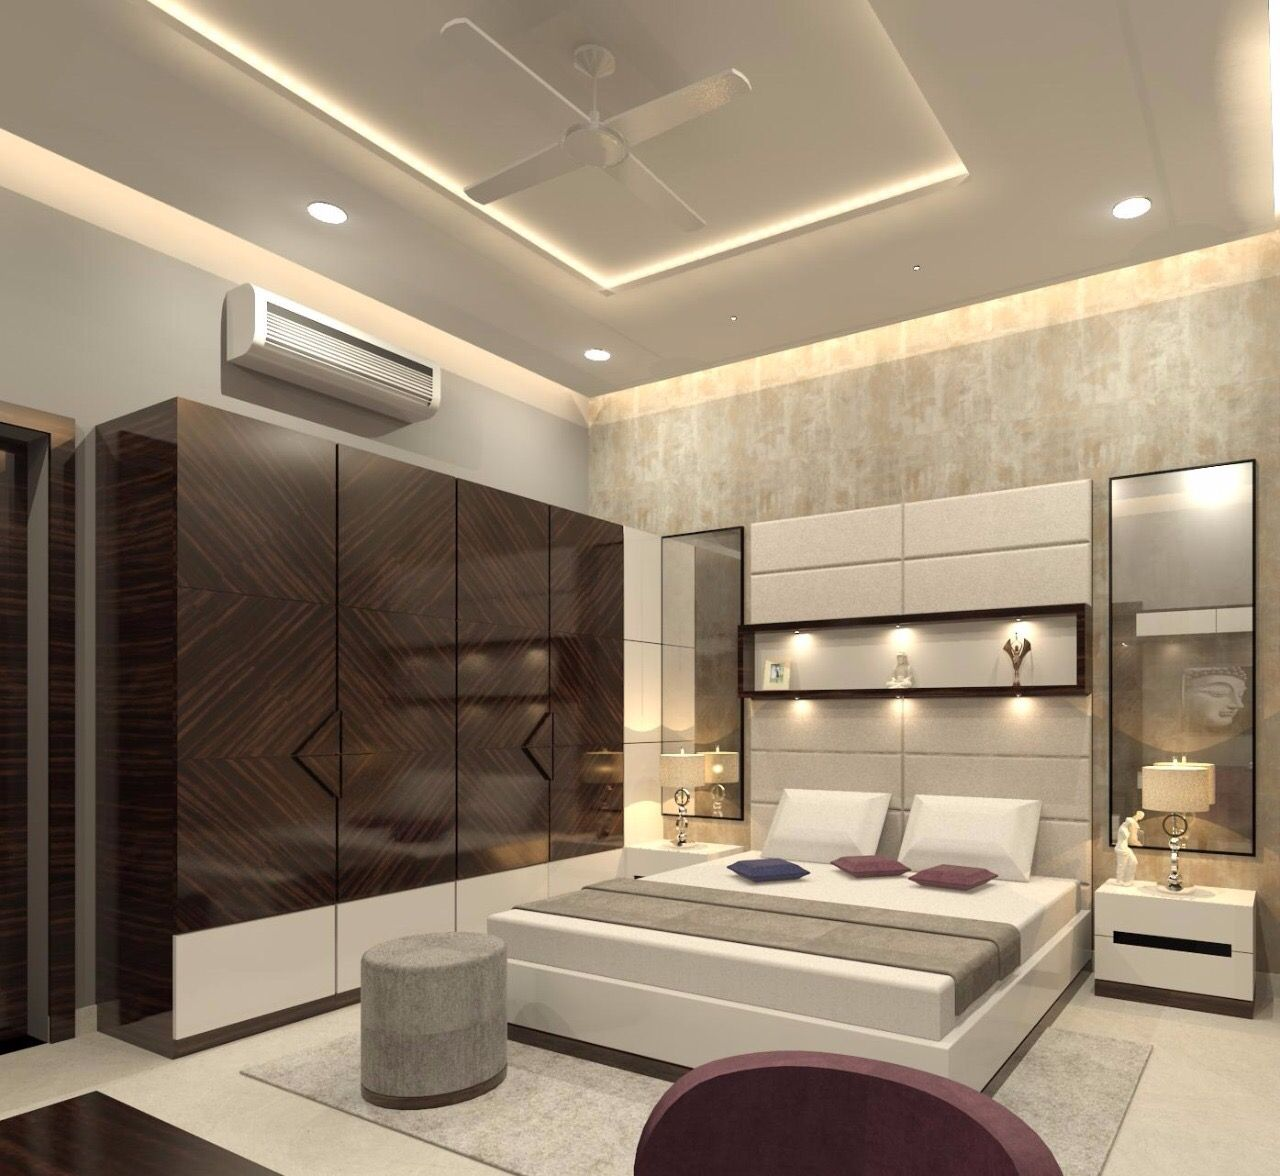 Bedroom | Luxury bedroom design, Bedroom false ceiling design